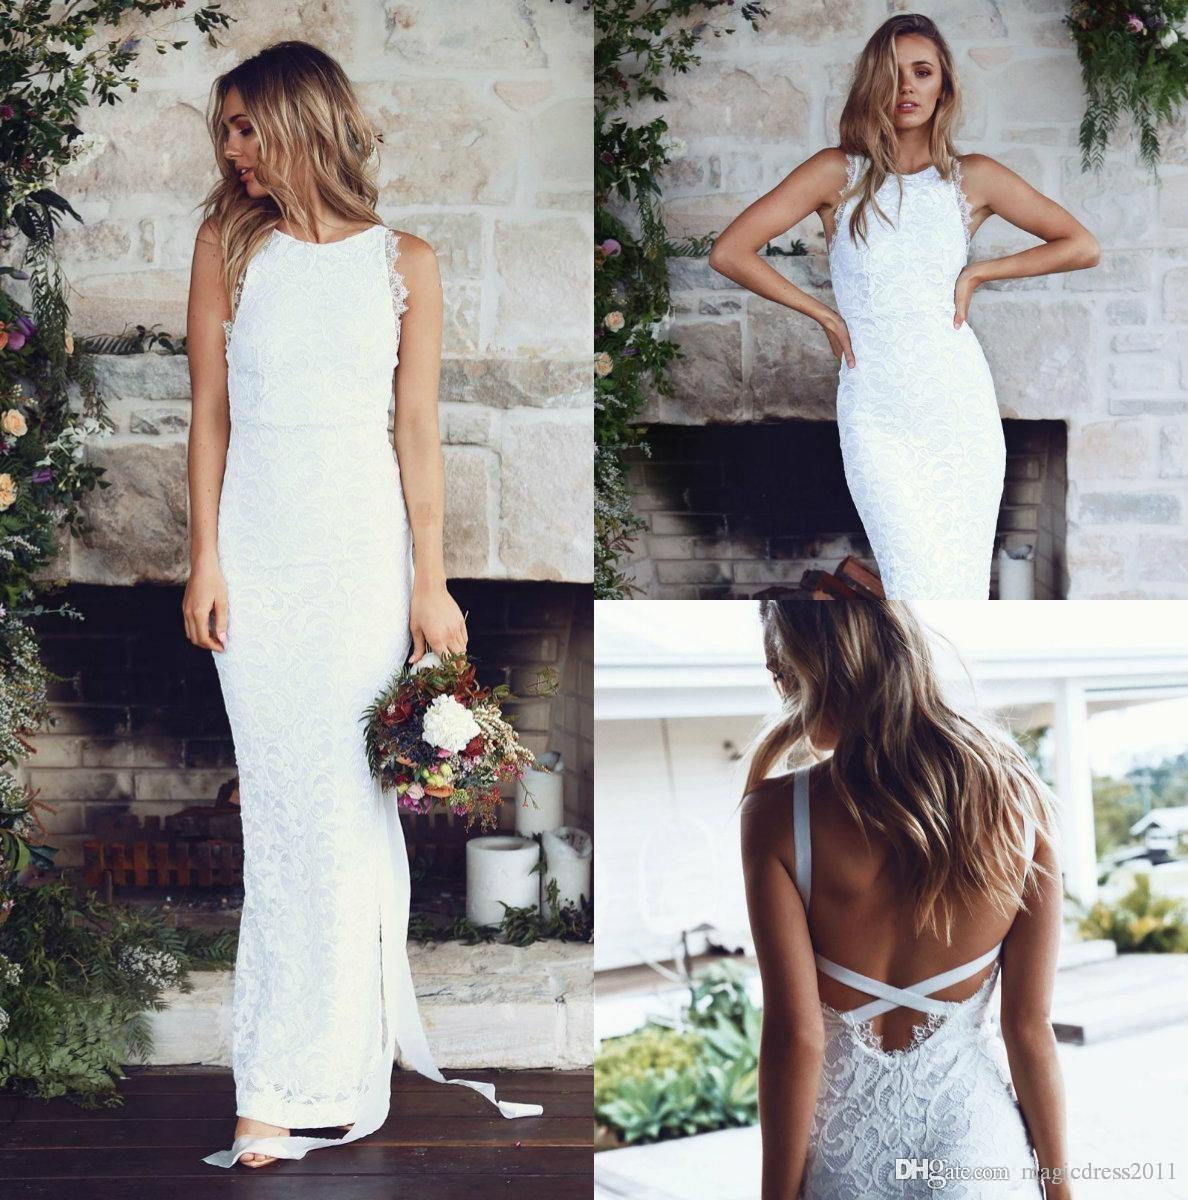 d279ece9c9 2018 New Sexy Simple Beach Wedding Dresses Bateau Neck Lace Bridal Gowns  Backless Boho Bridal Gowns Custom Made Formal Dresses Wedding Dresses  Affordable ...